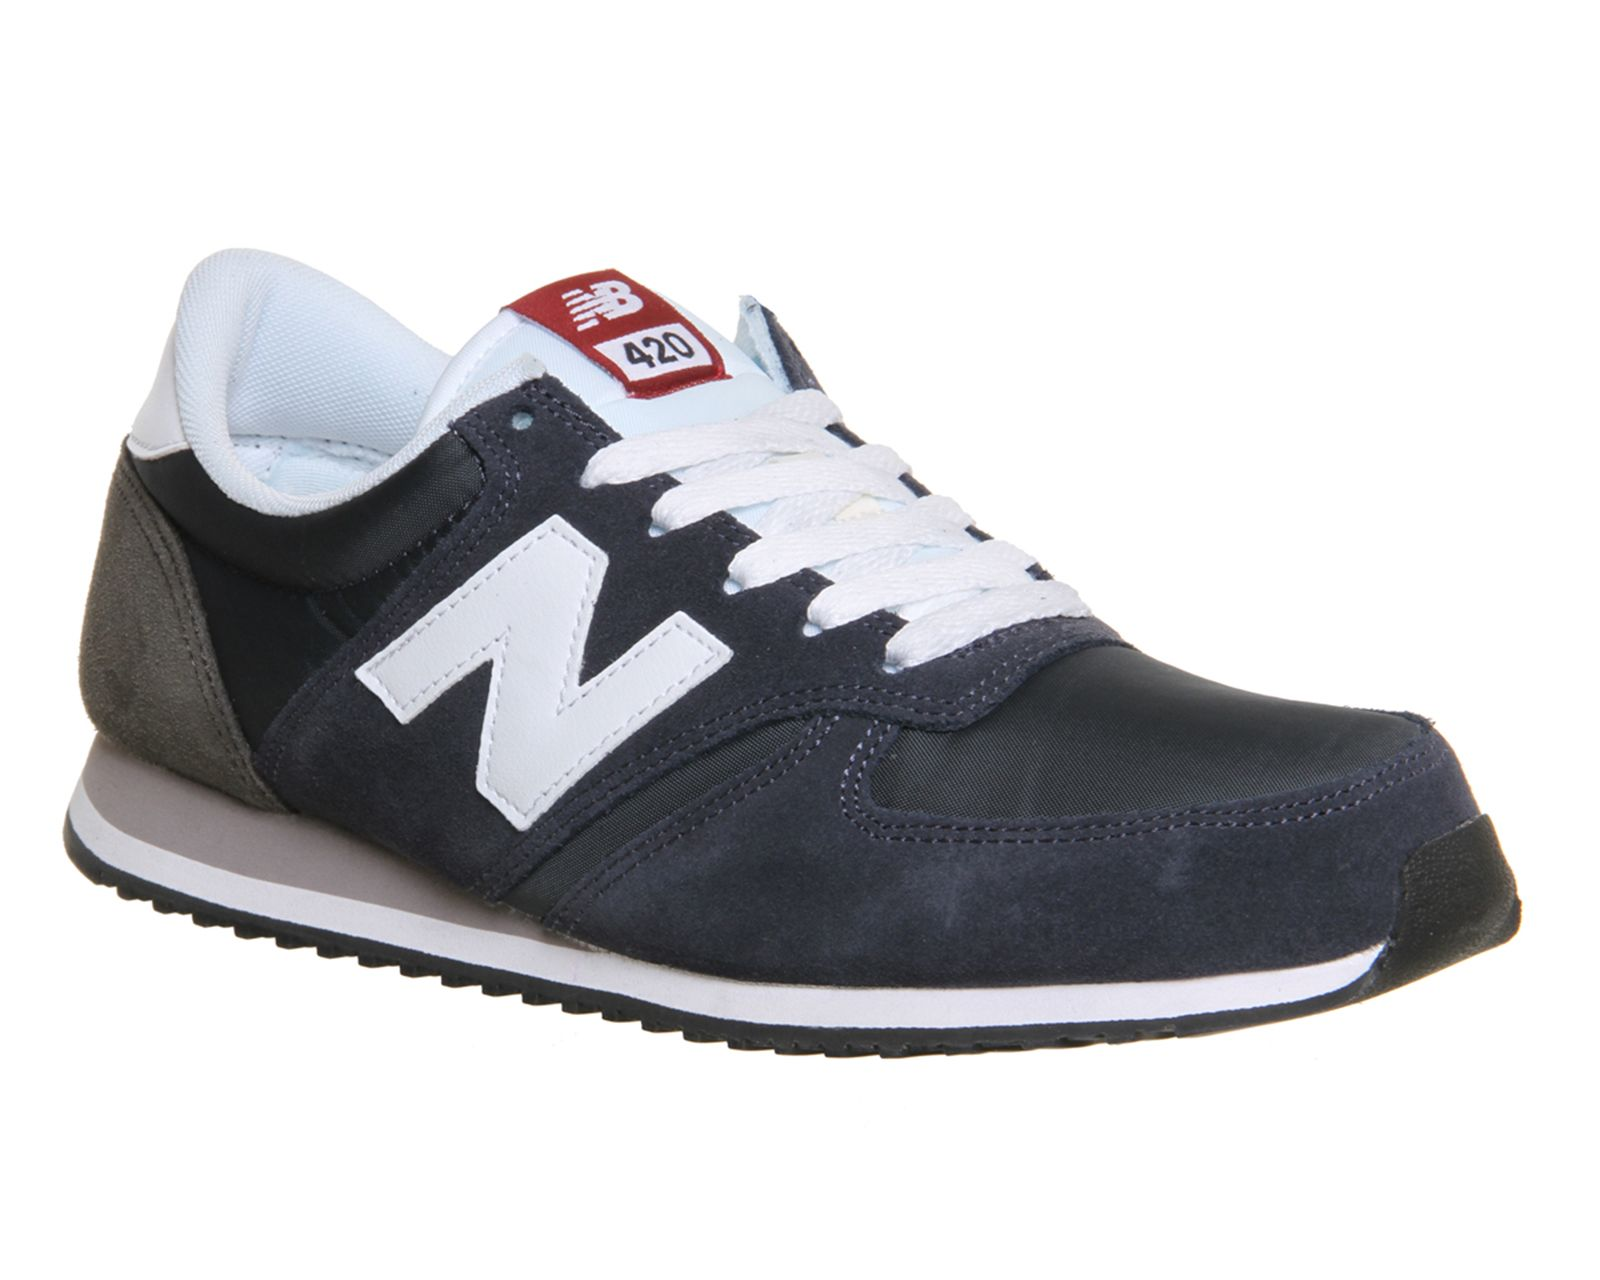 Buy Navy White New Balance U420 Trainers from OFFICE.co.uk.